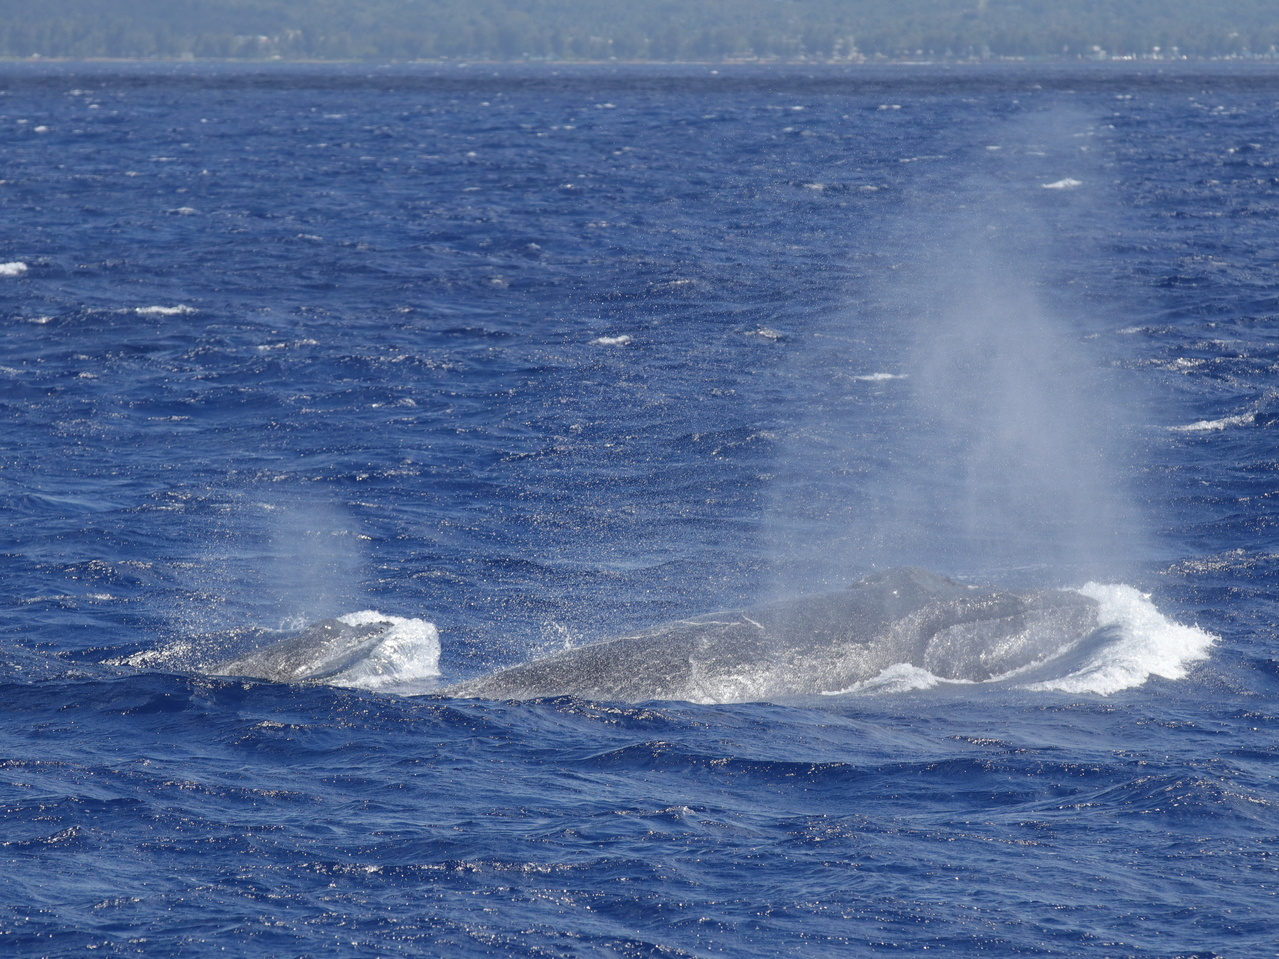 A humpback whale mother and calf surface in nearshore waters off Saipan.